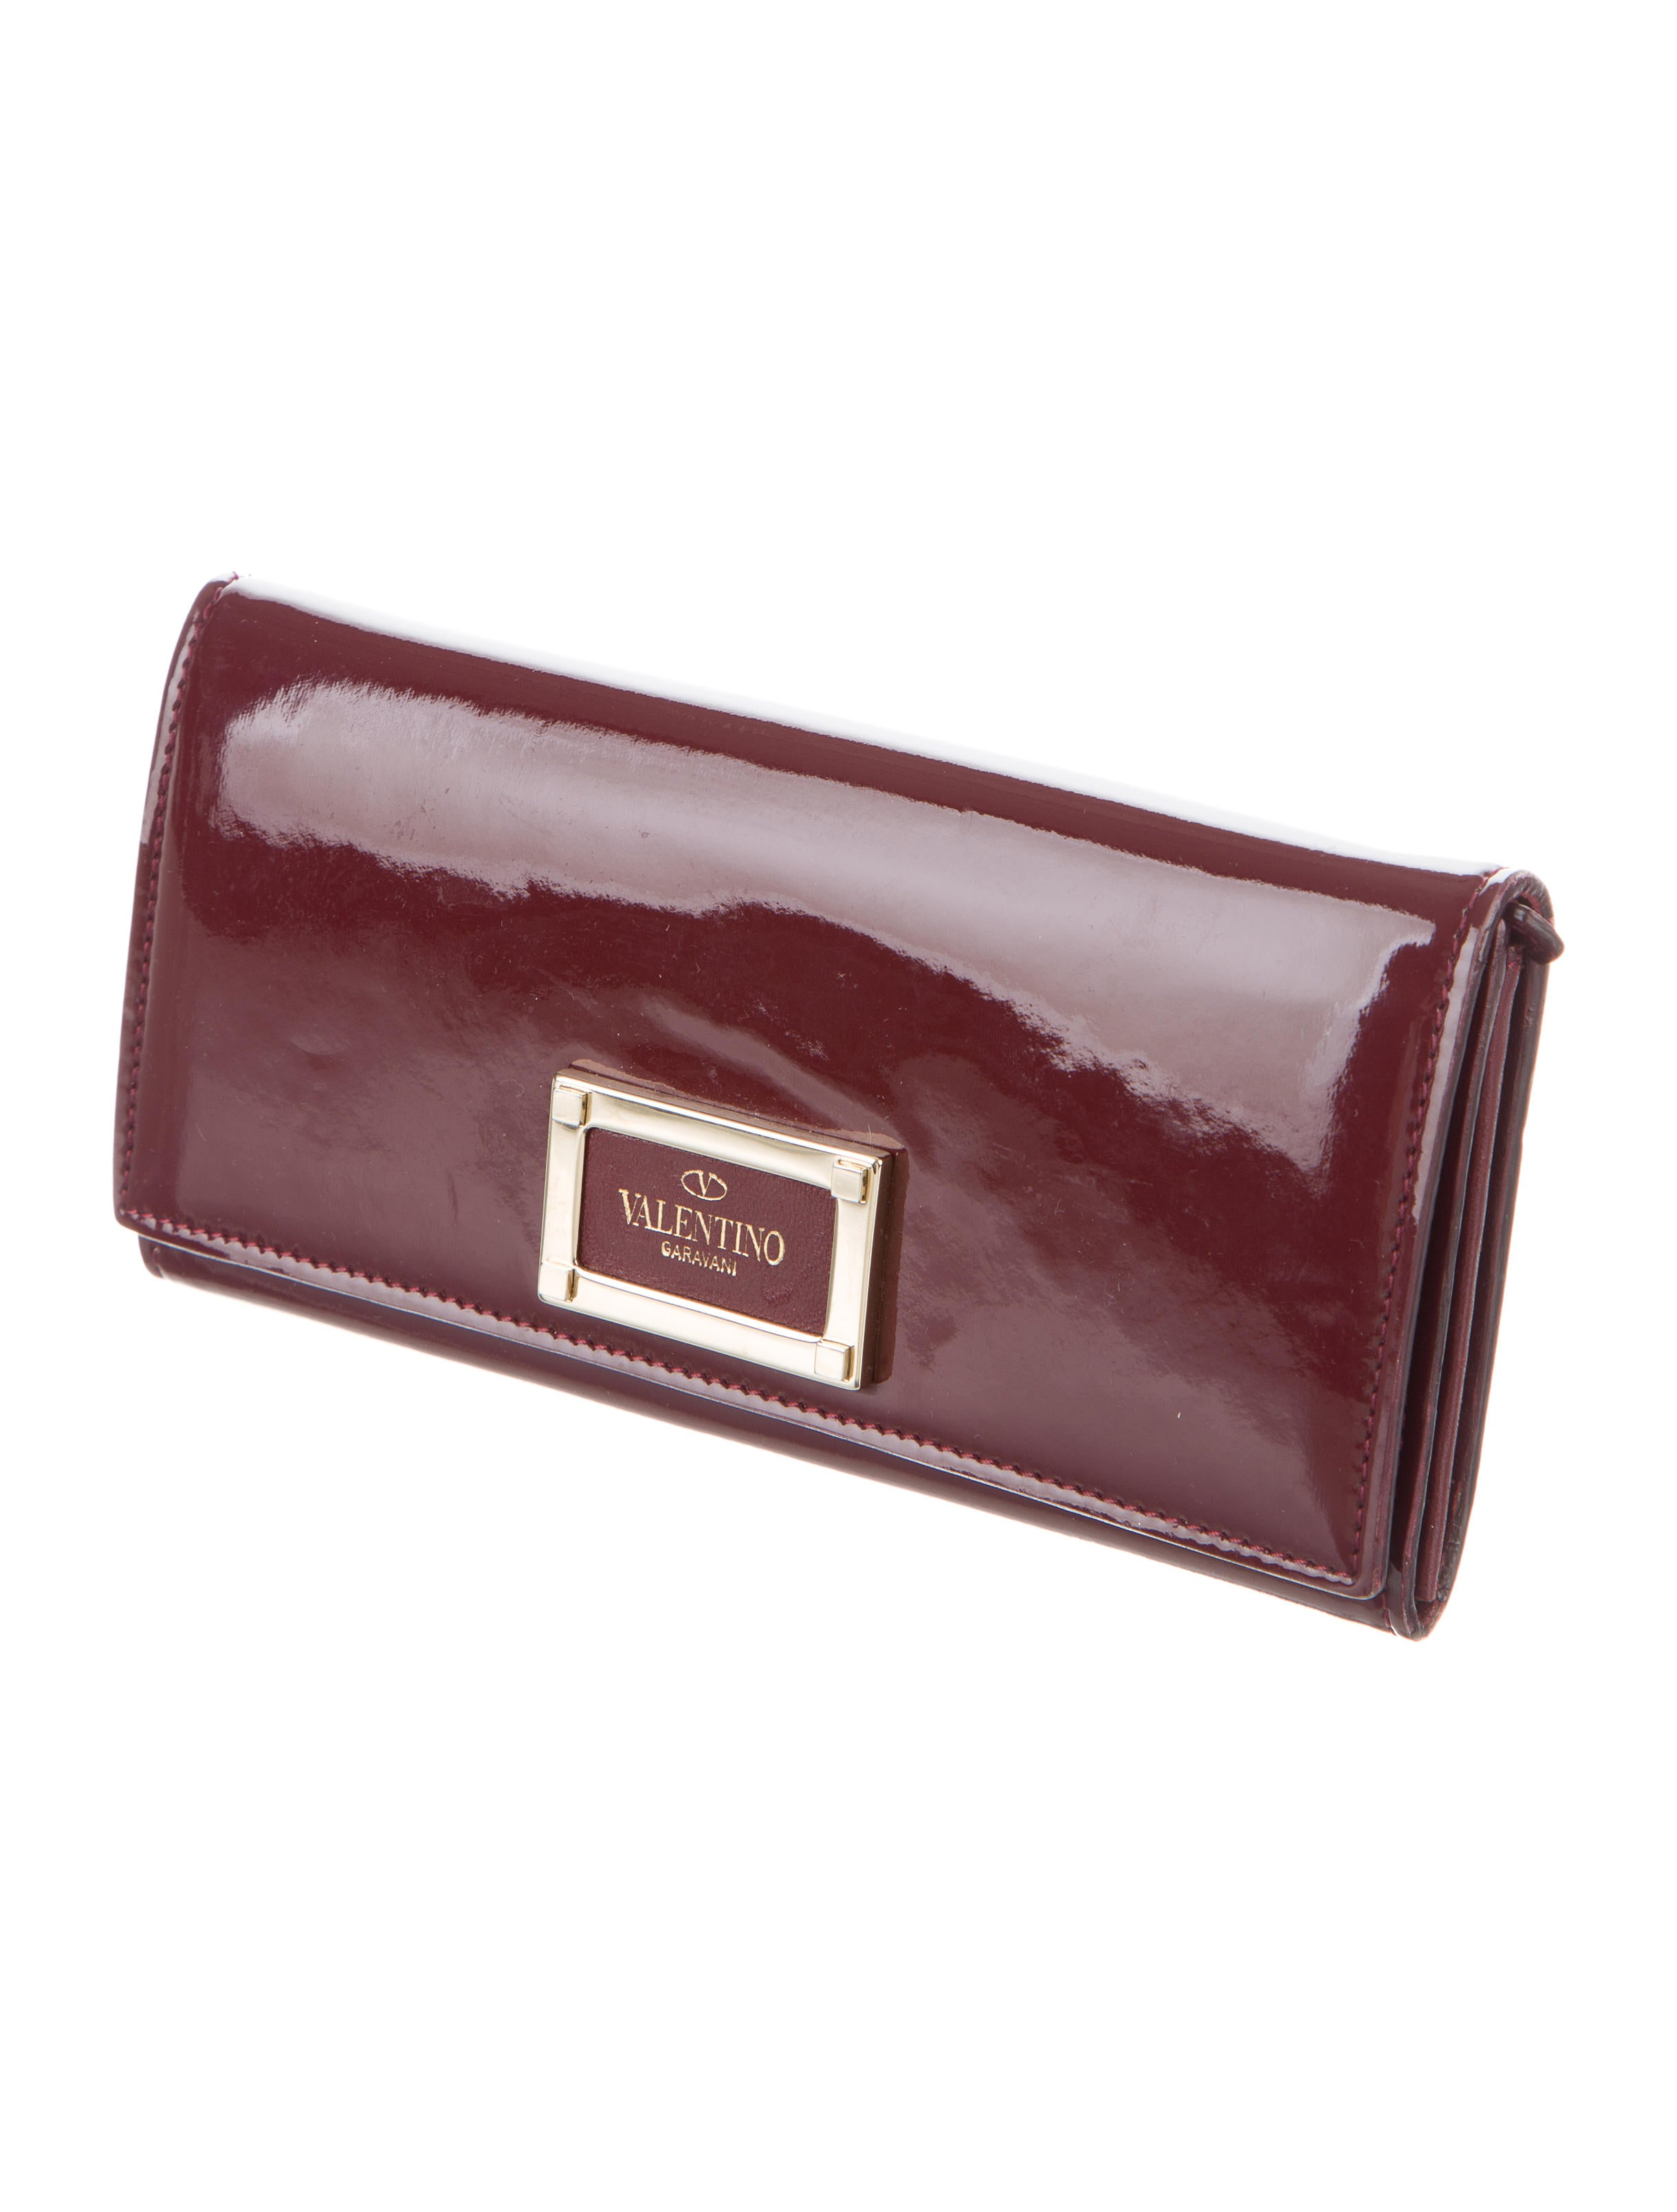 Valentino Patent Leather Wallet - Accessories - VAL70233 | The RealReal